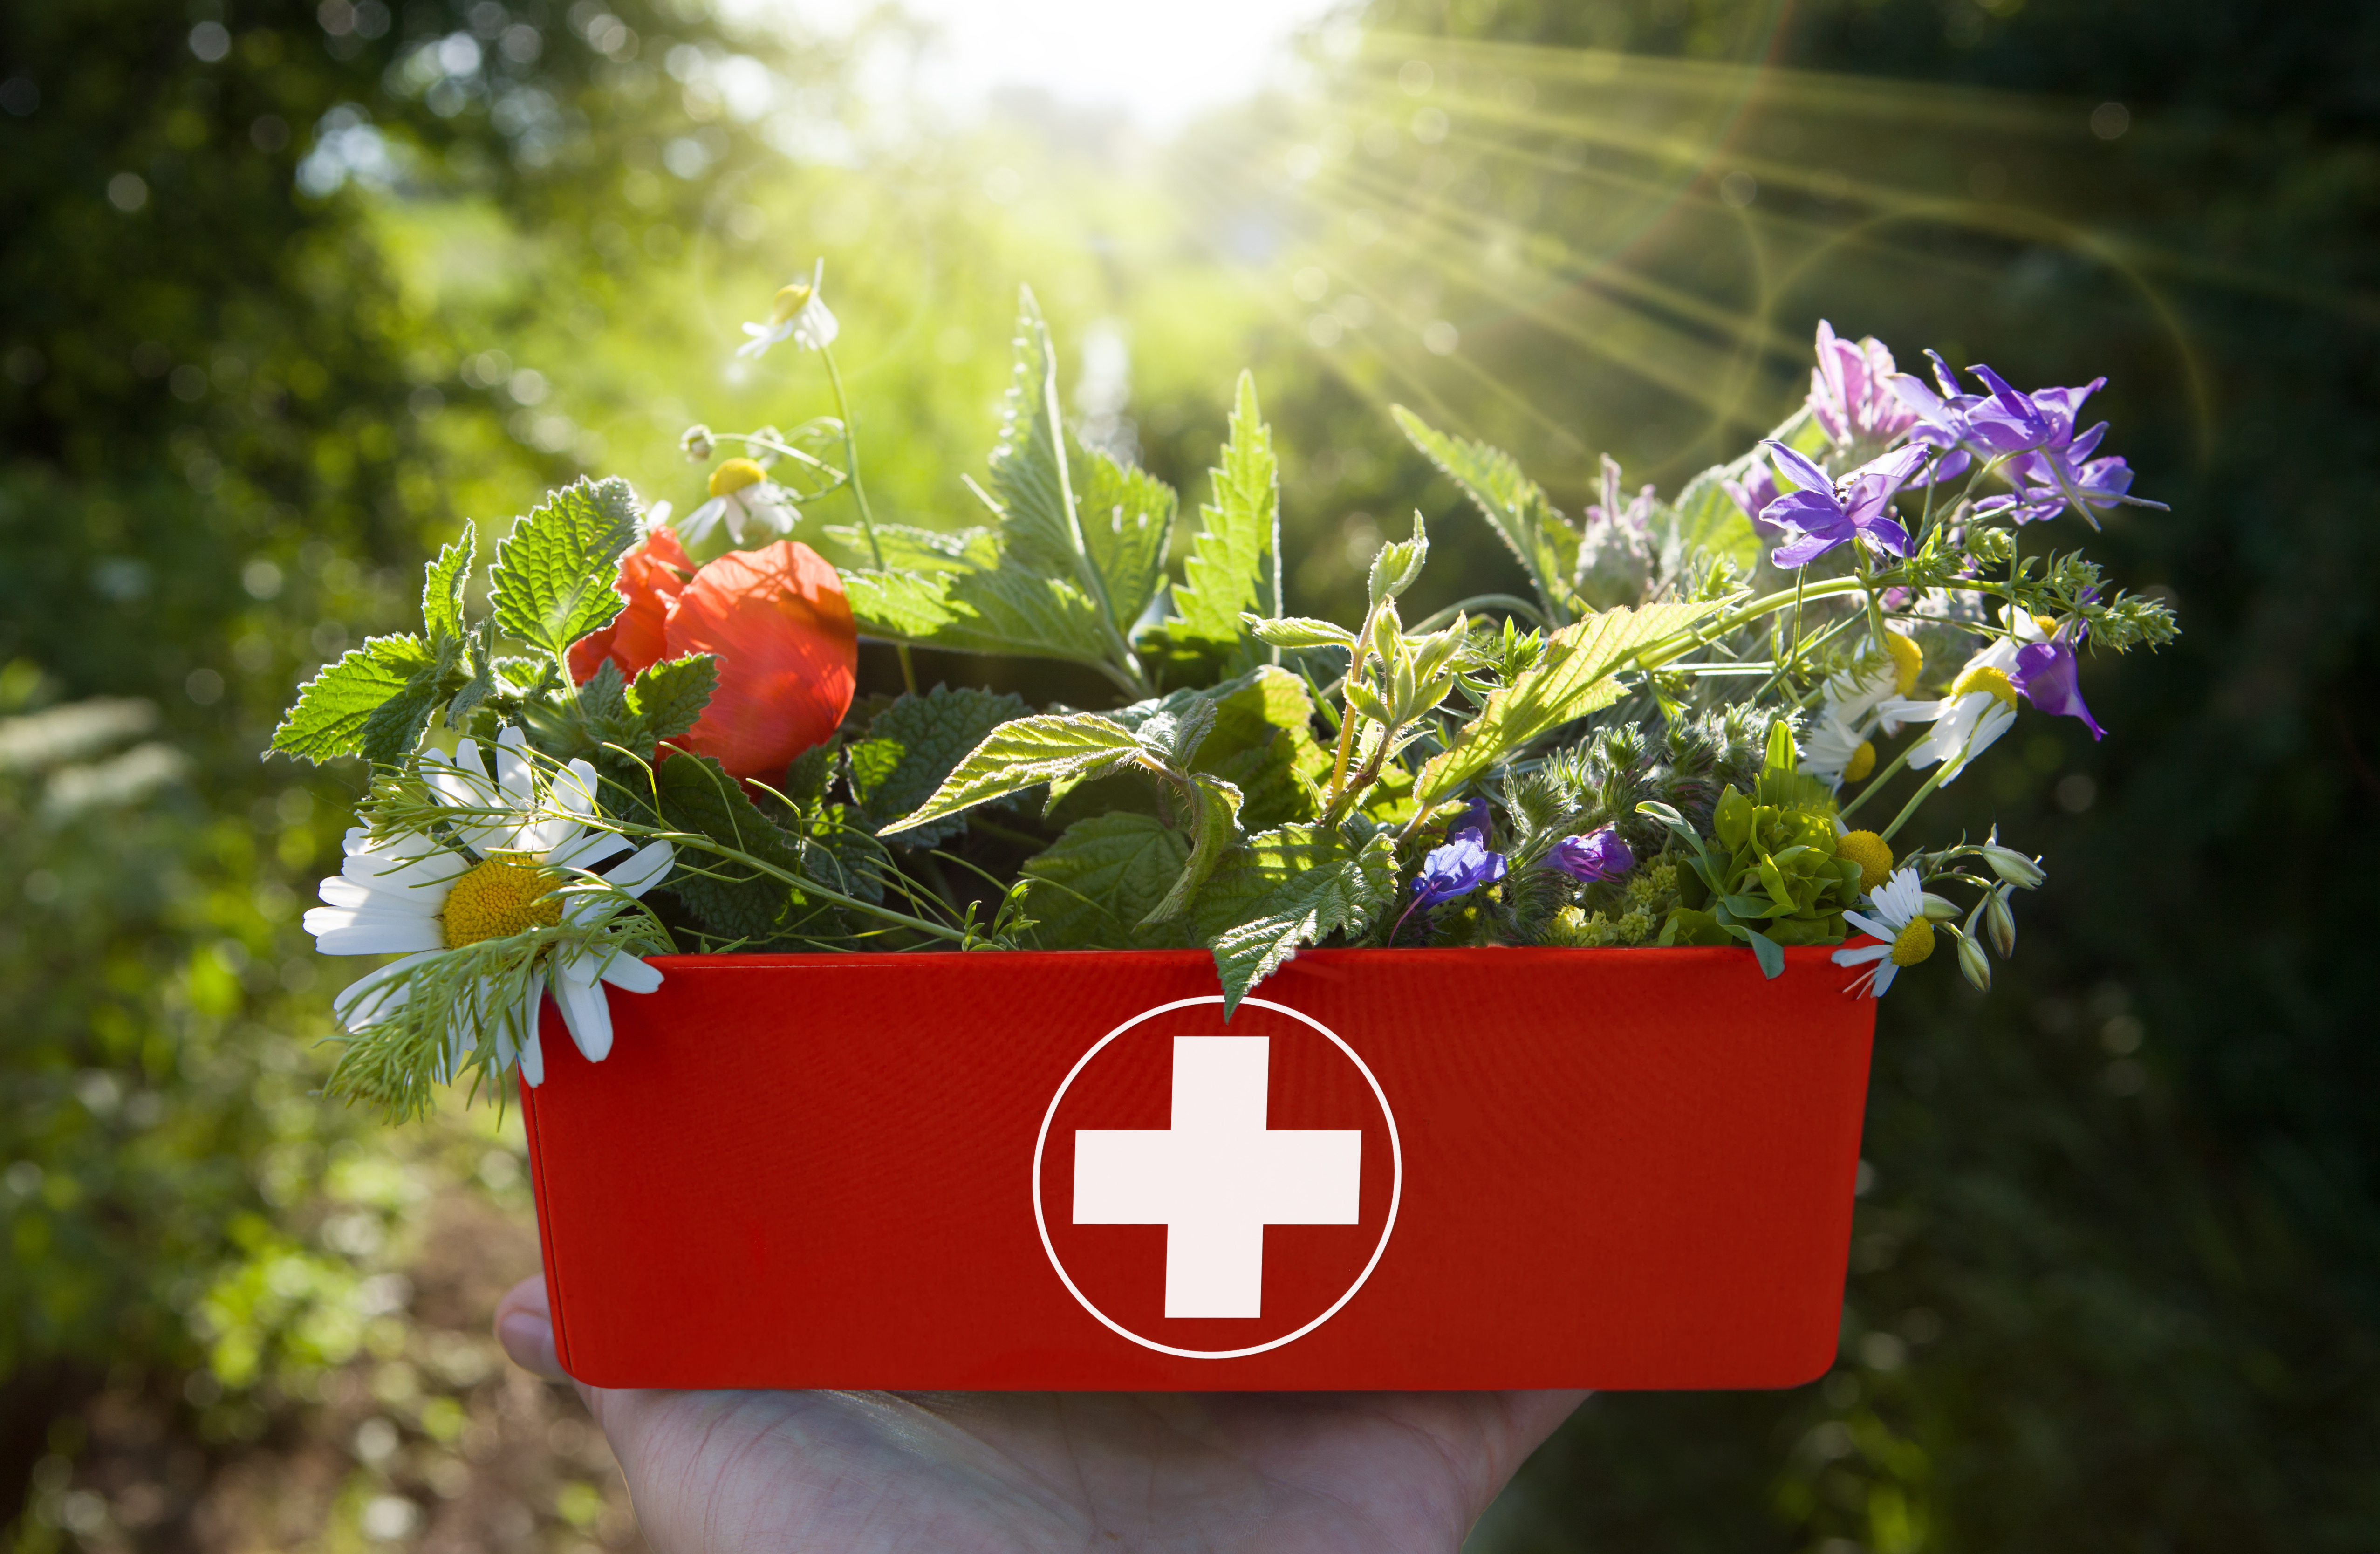 First aid kit filled with plants